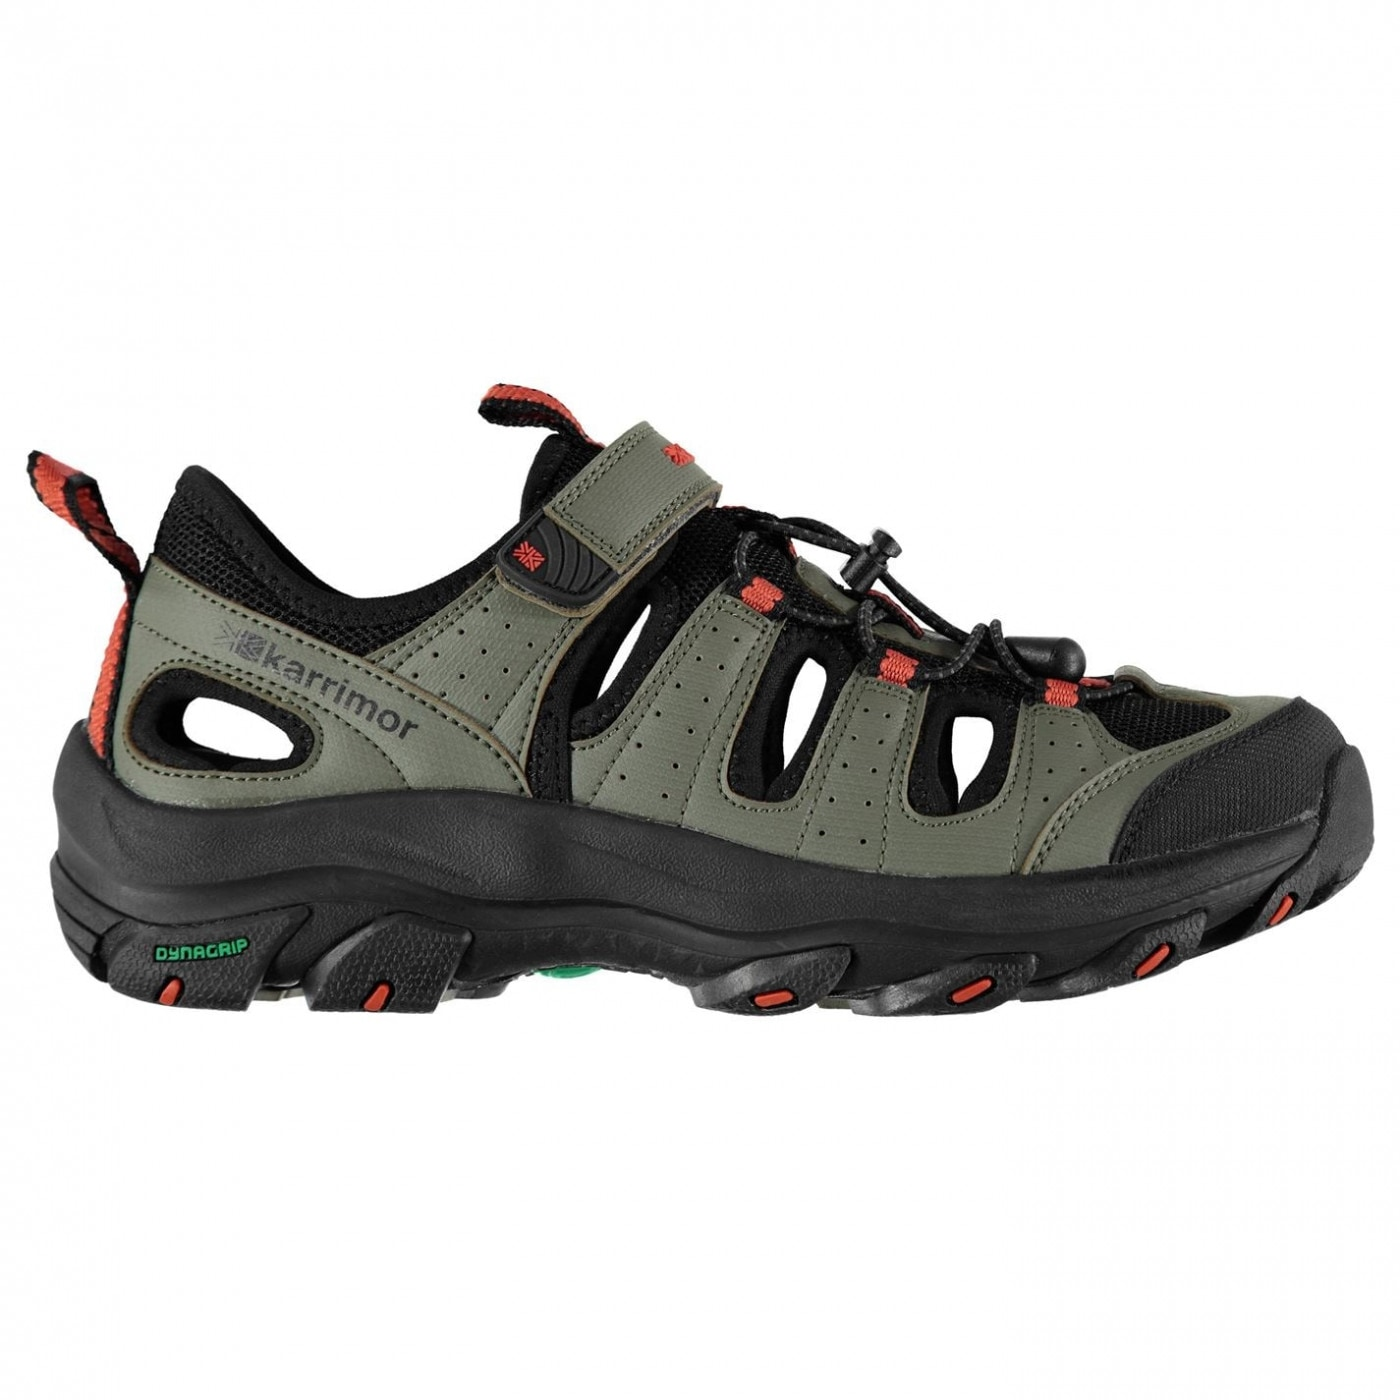 Karrimor K2 Men's Walking Sandals